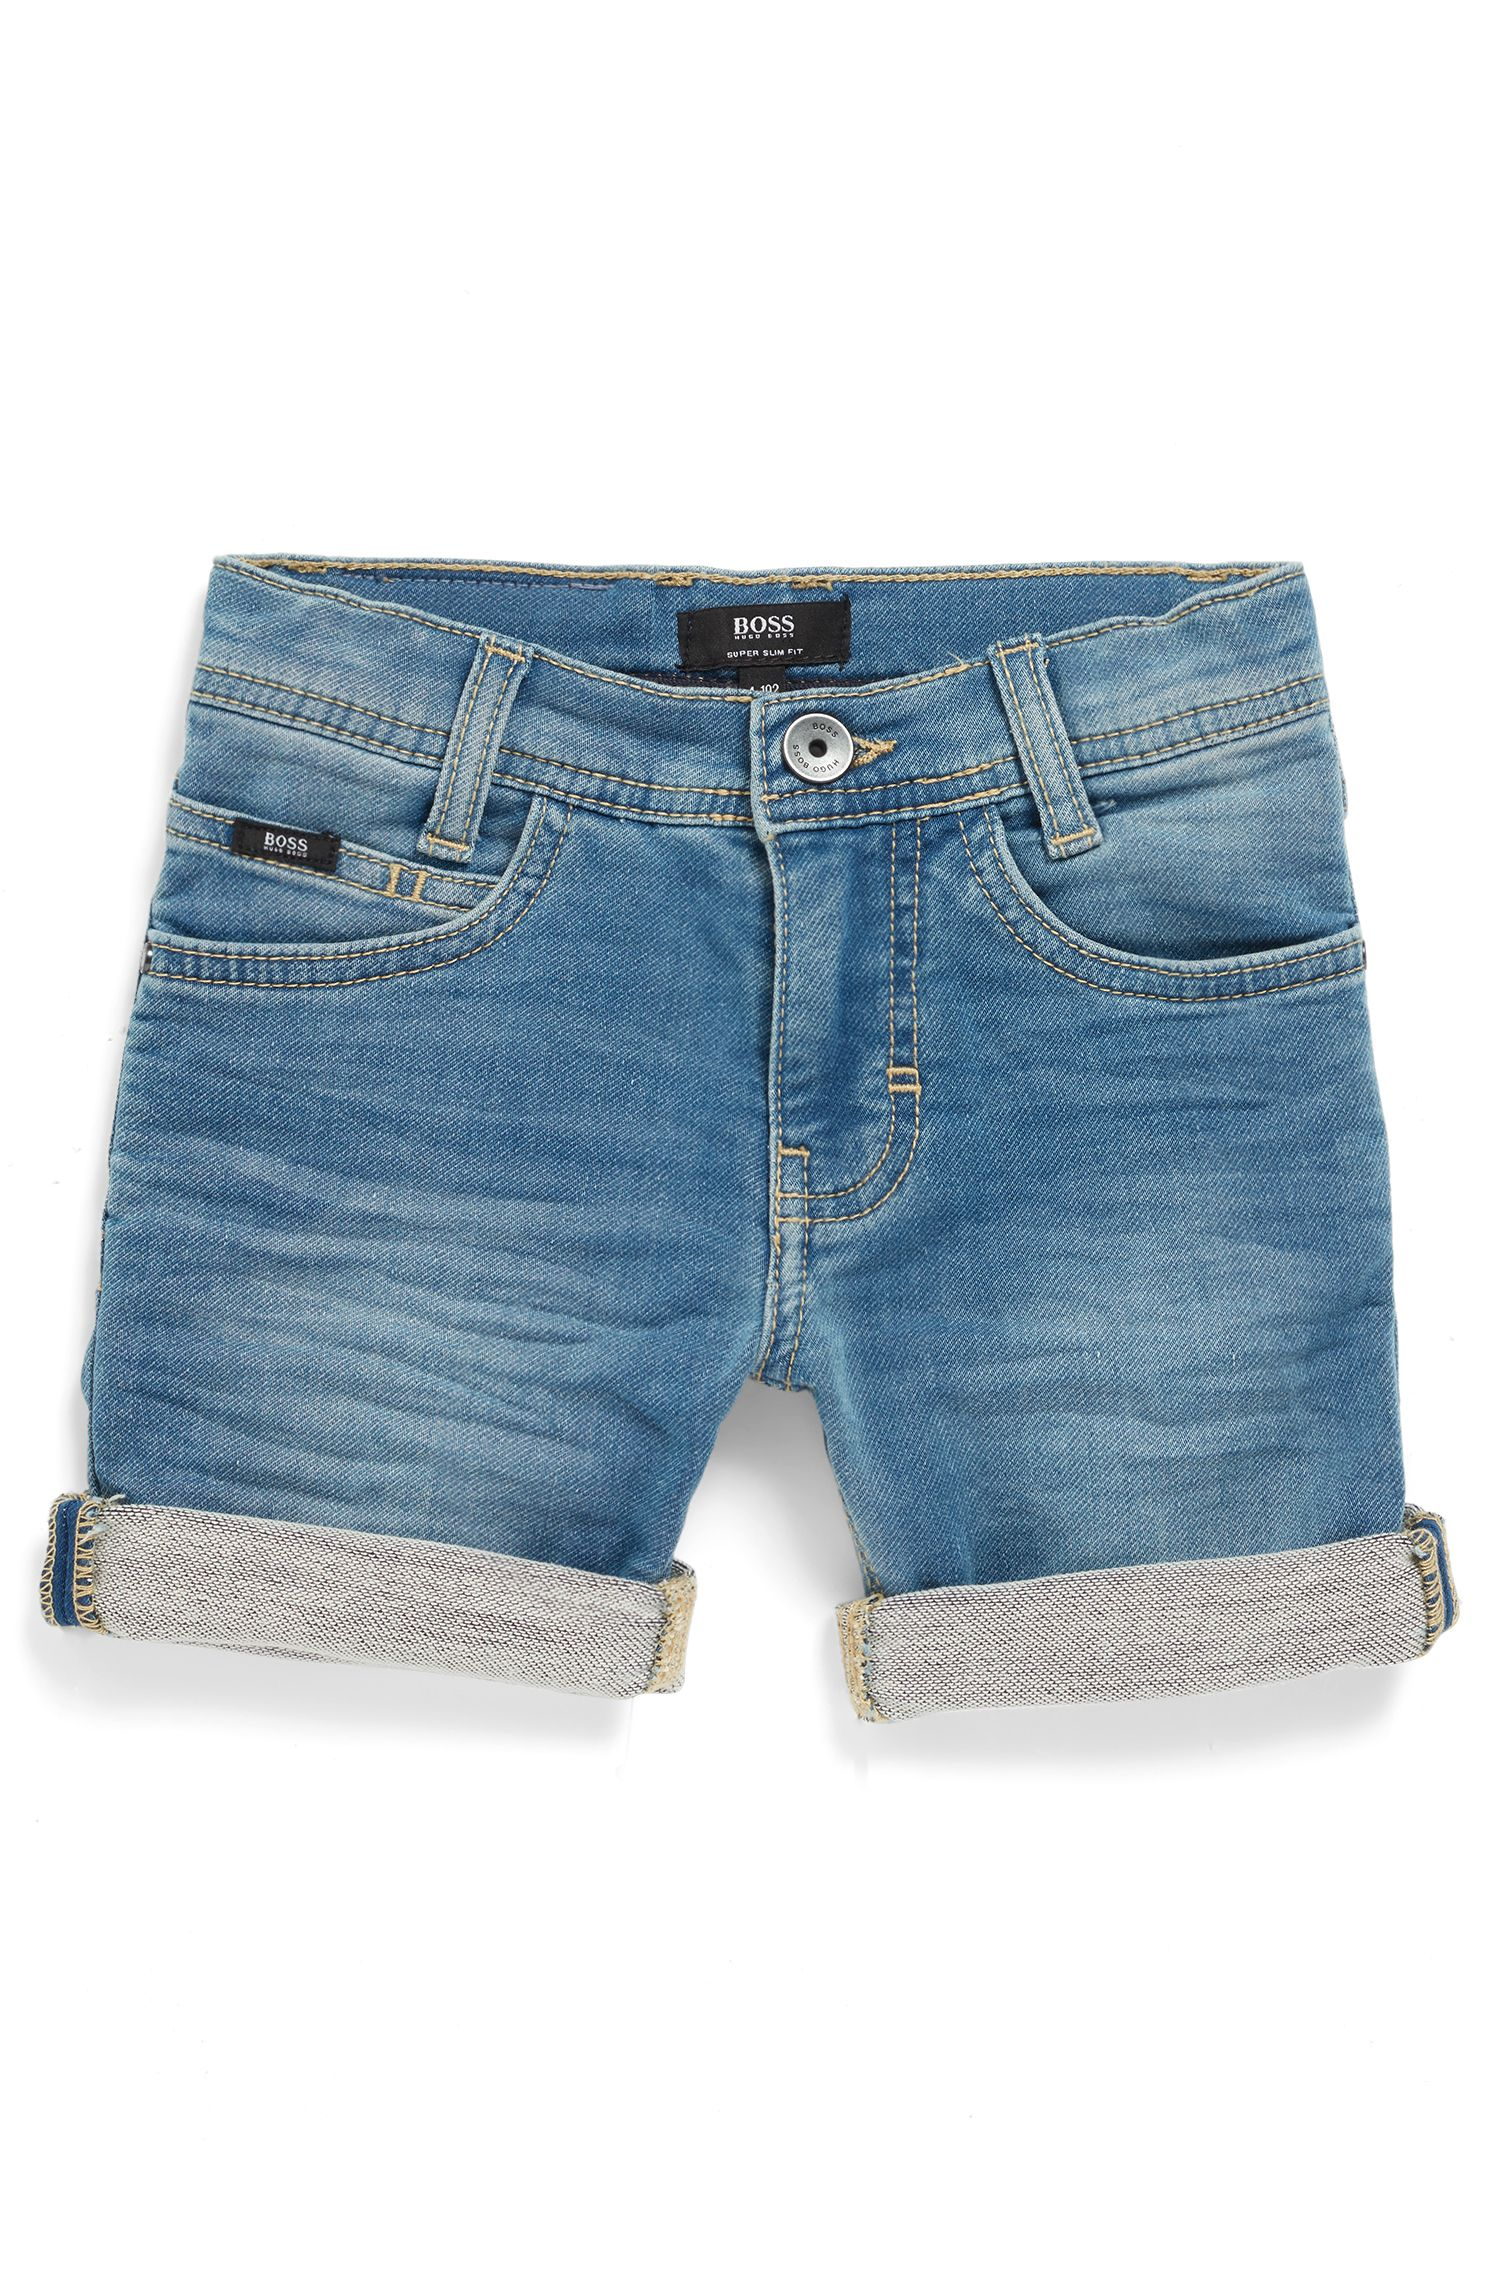 Regular-Fit Kids-Bermudas aus Stretch-Denim mit doppeltem Stone-washed-Effekt, Blau